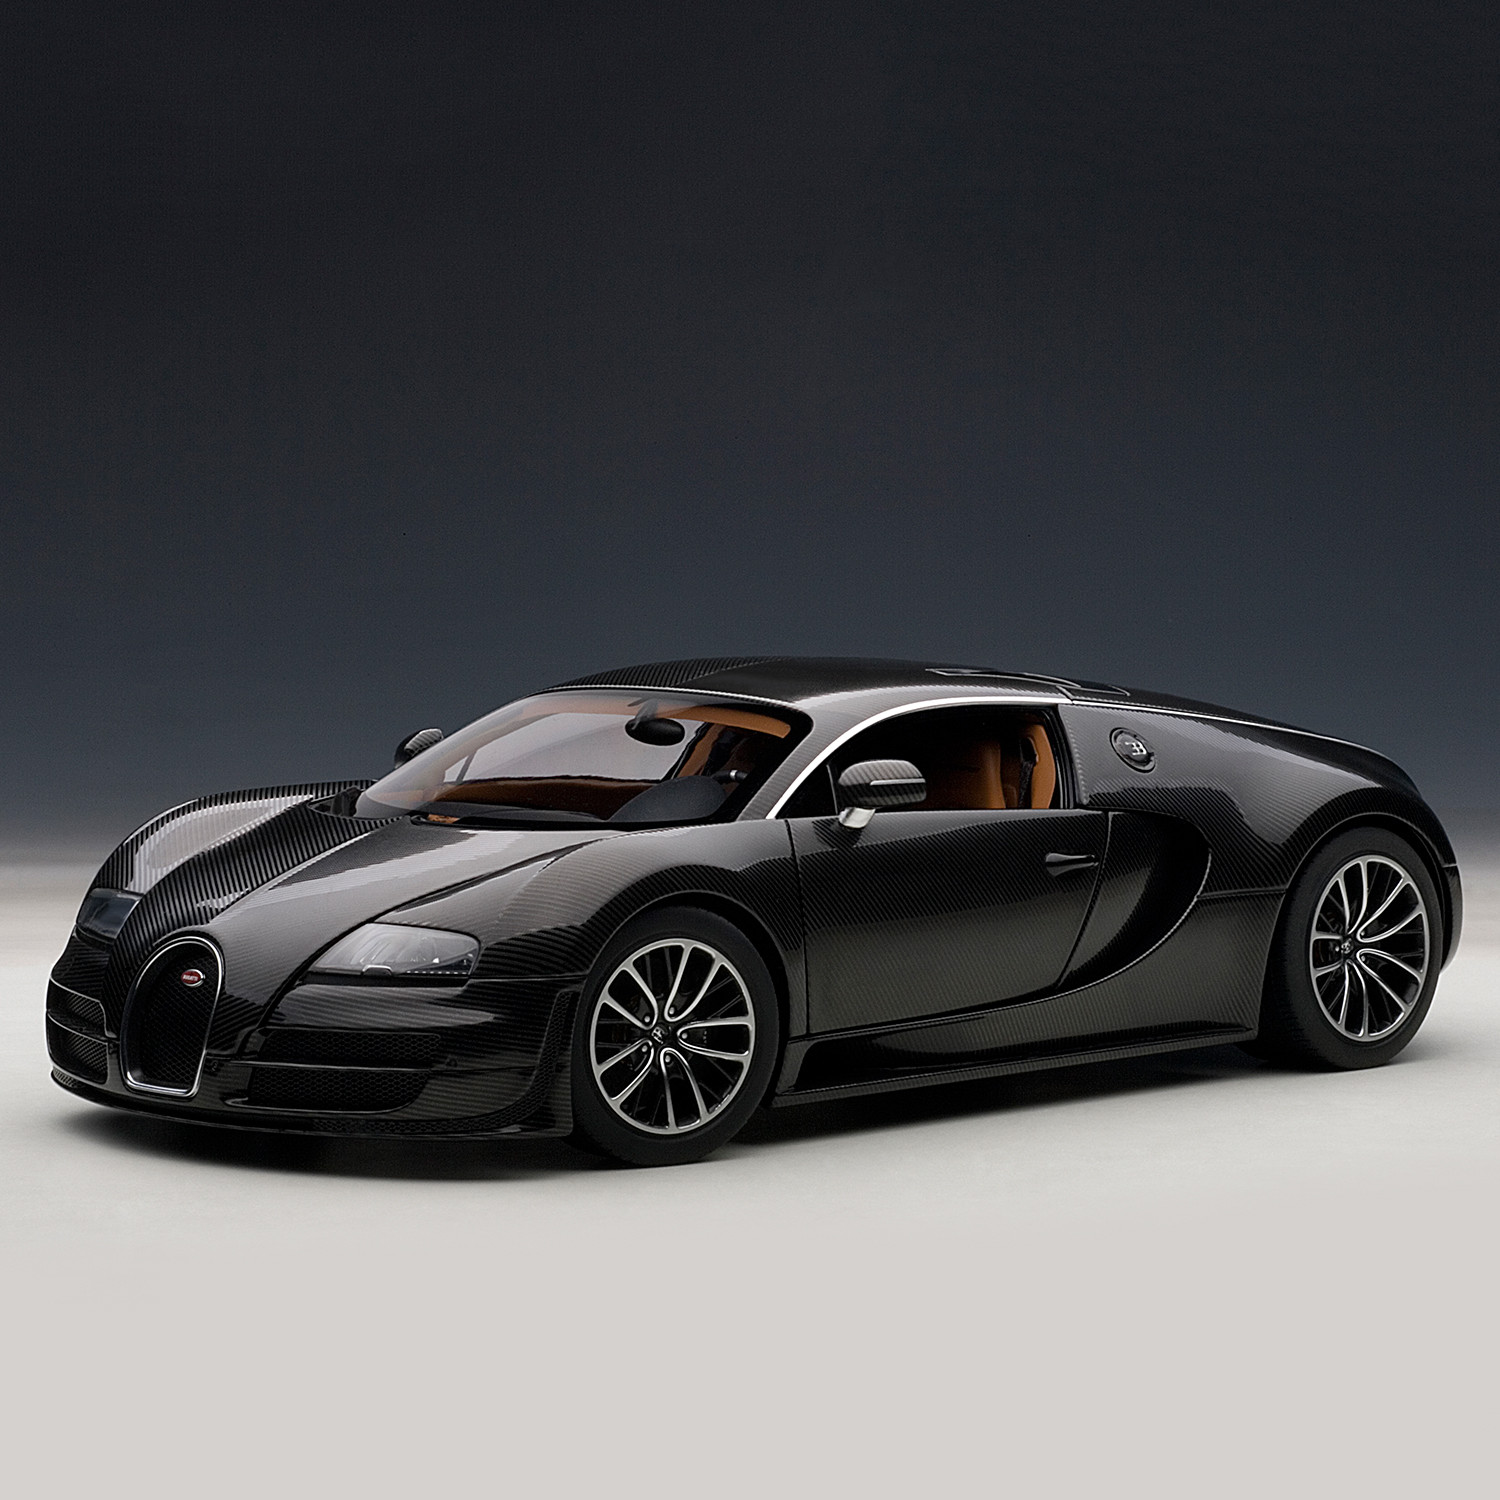 Bugatti Veyron Super Sport (Black & Orange)